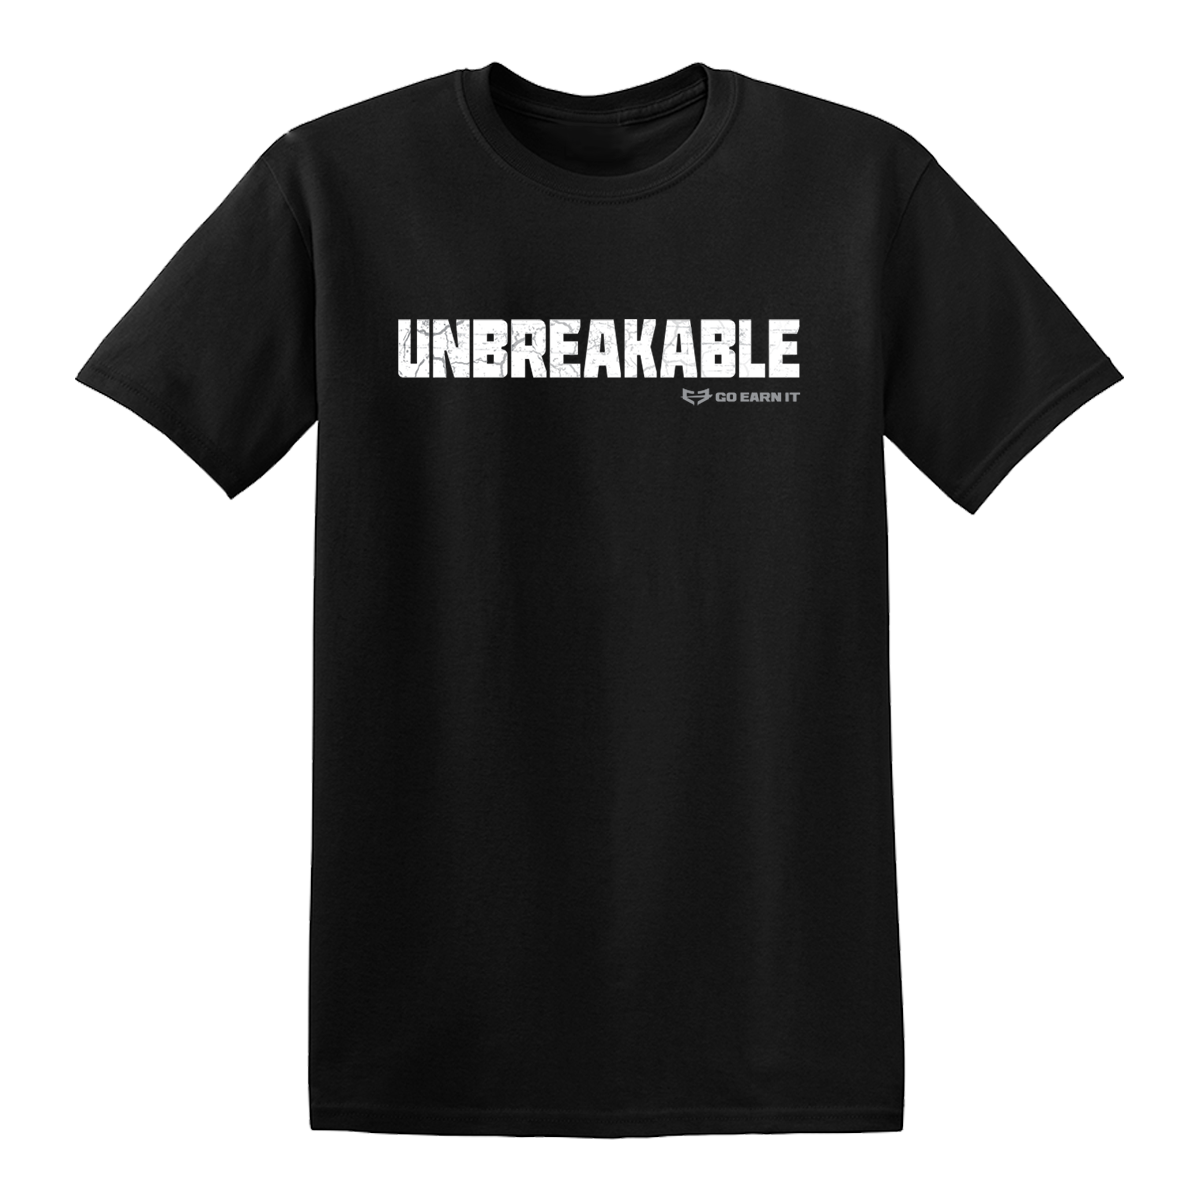 UNBREAKABLE GRAPHIC TEE - Black + FREE Sunglasses